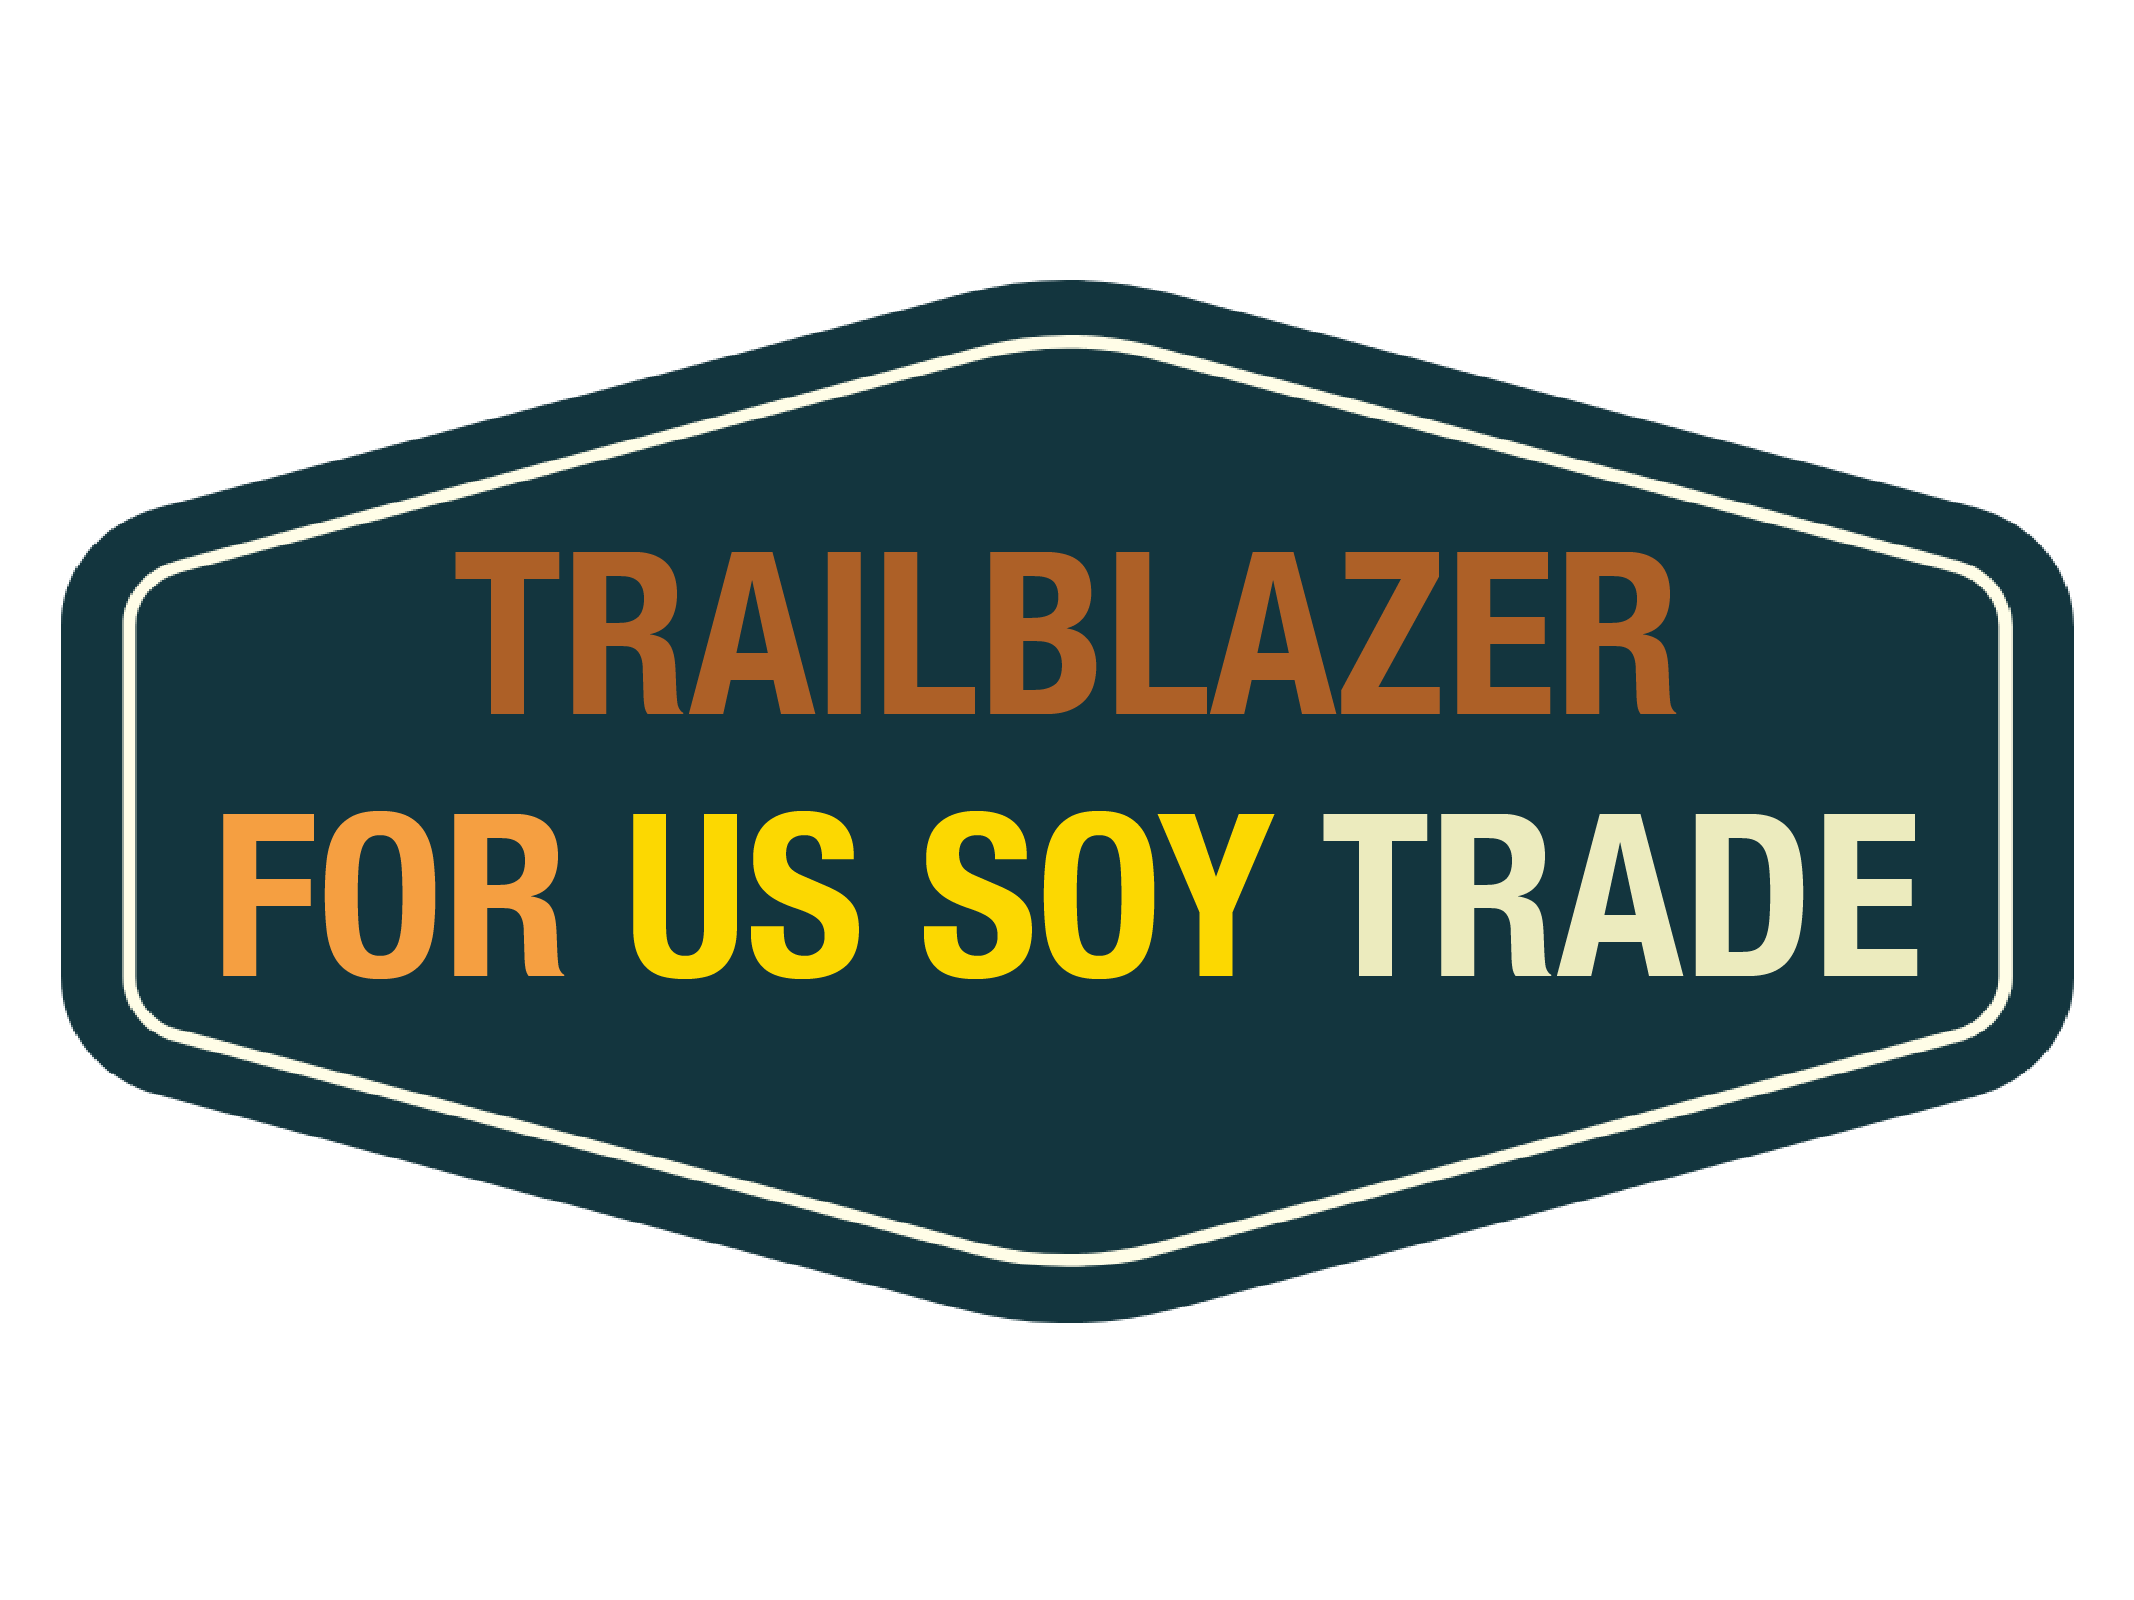 Ahead of Growing Global Trends: WISHH shares science to trailblaze for U.S. soy trade